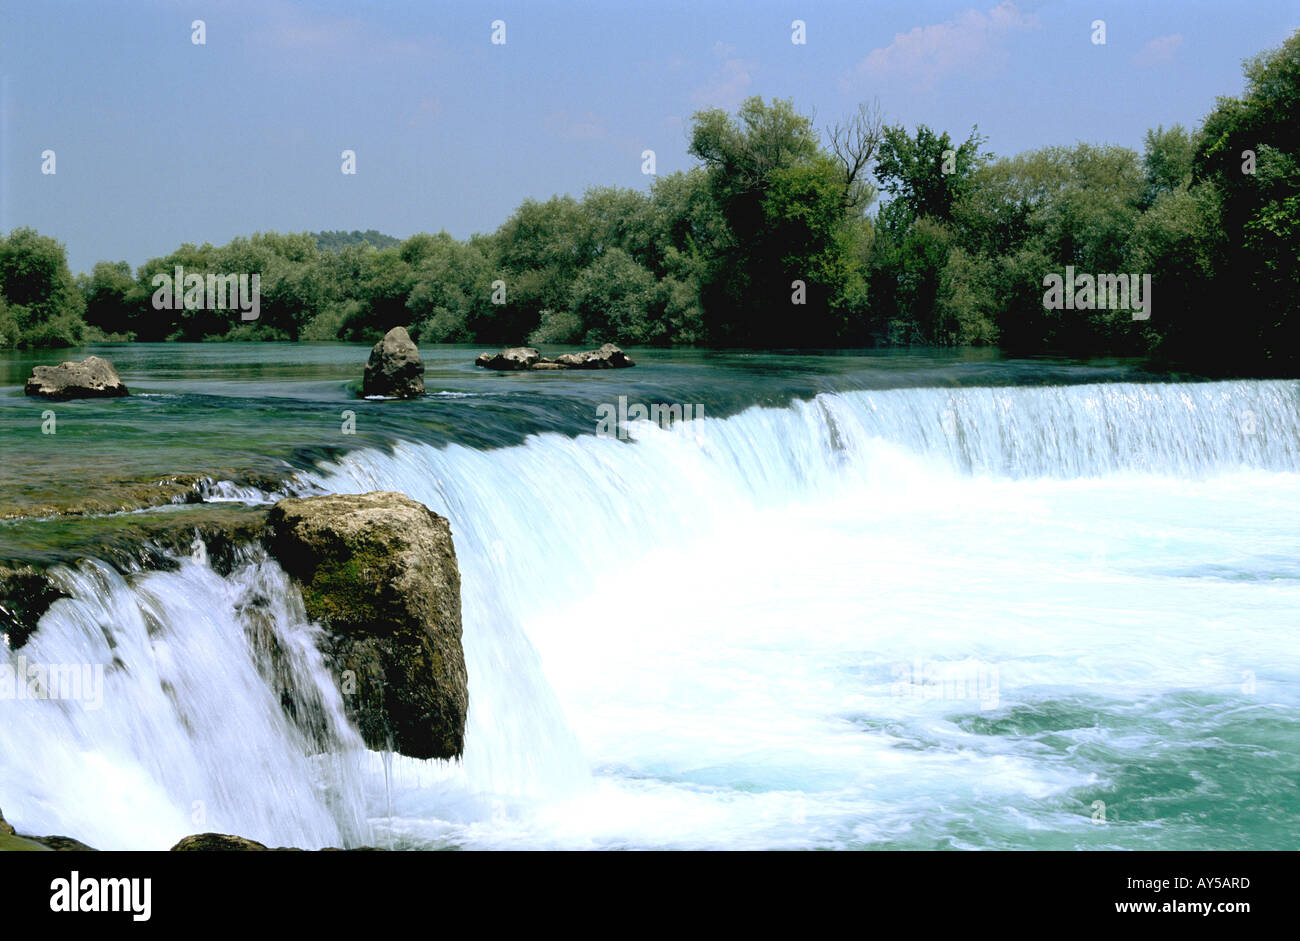 Manavgat Falls in Turkey: photos, how to get there 6